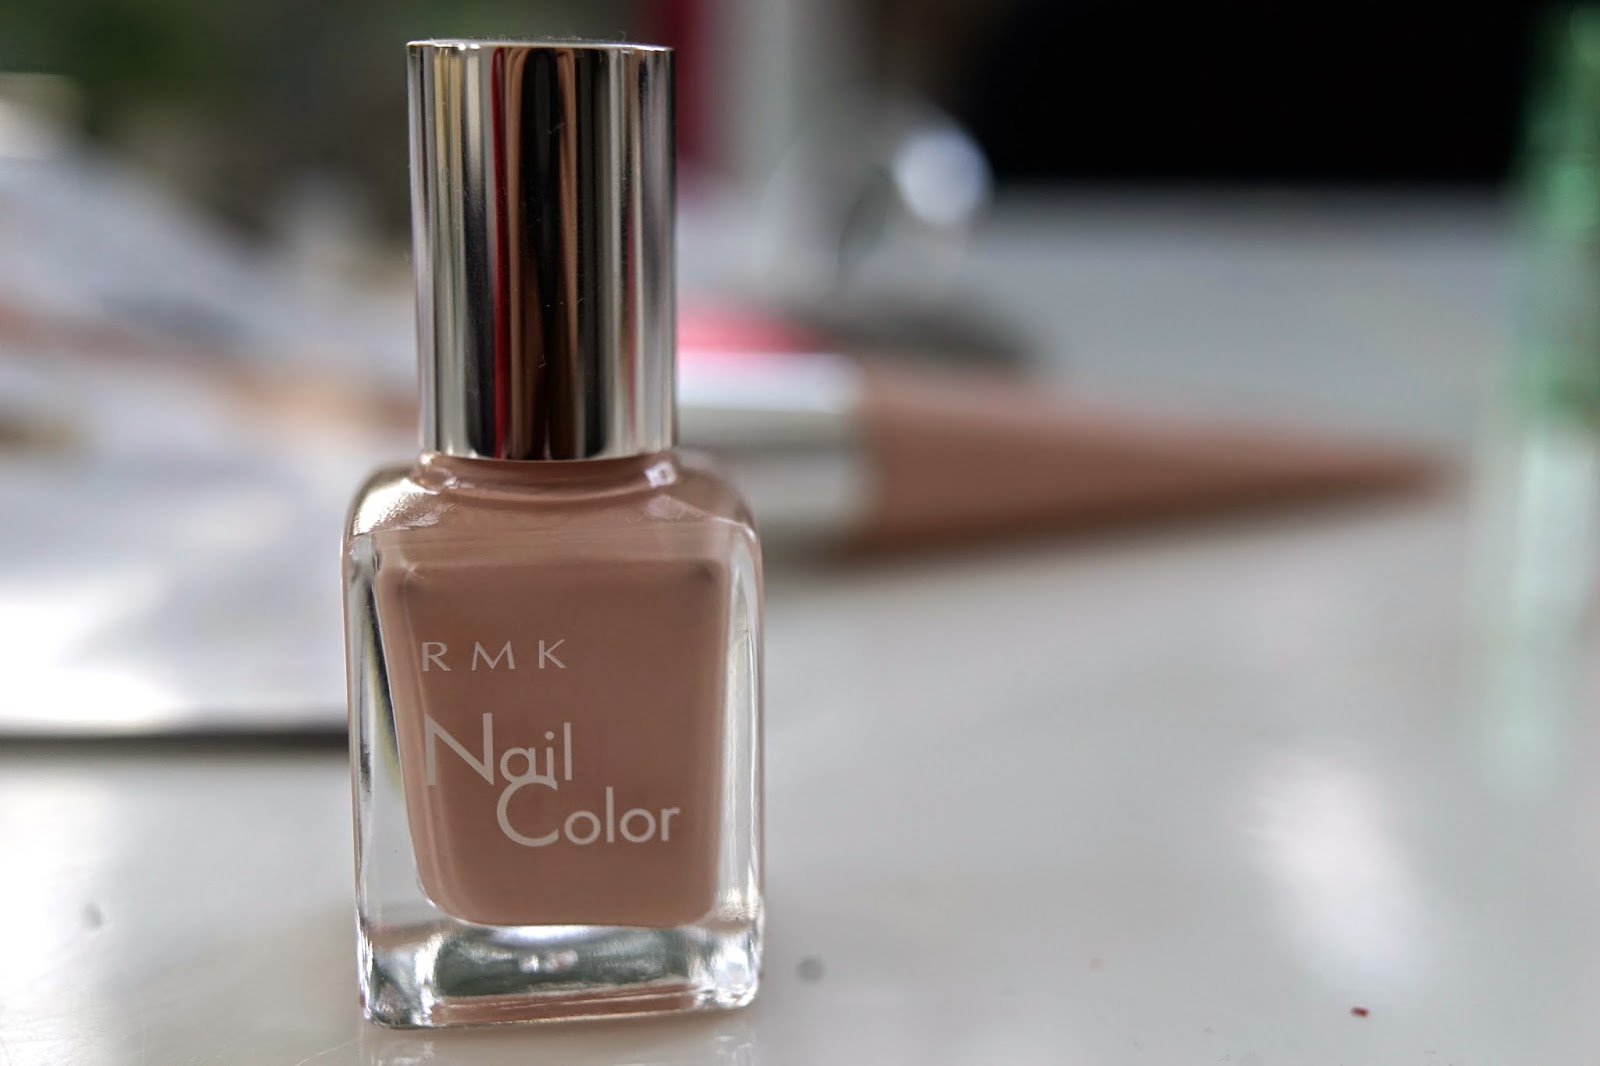 RMK Nail Colour nude